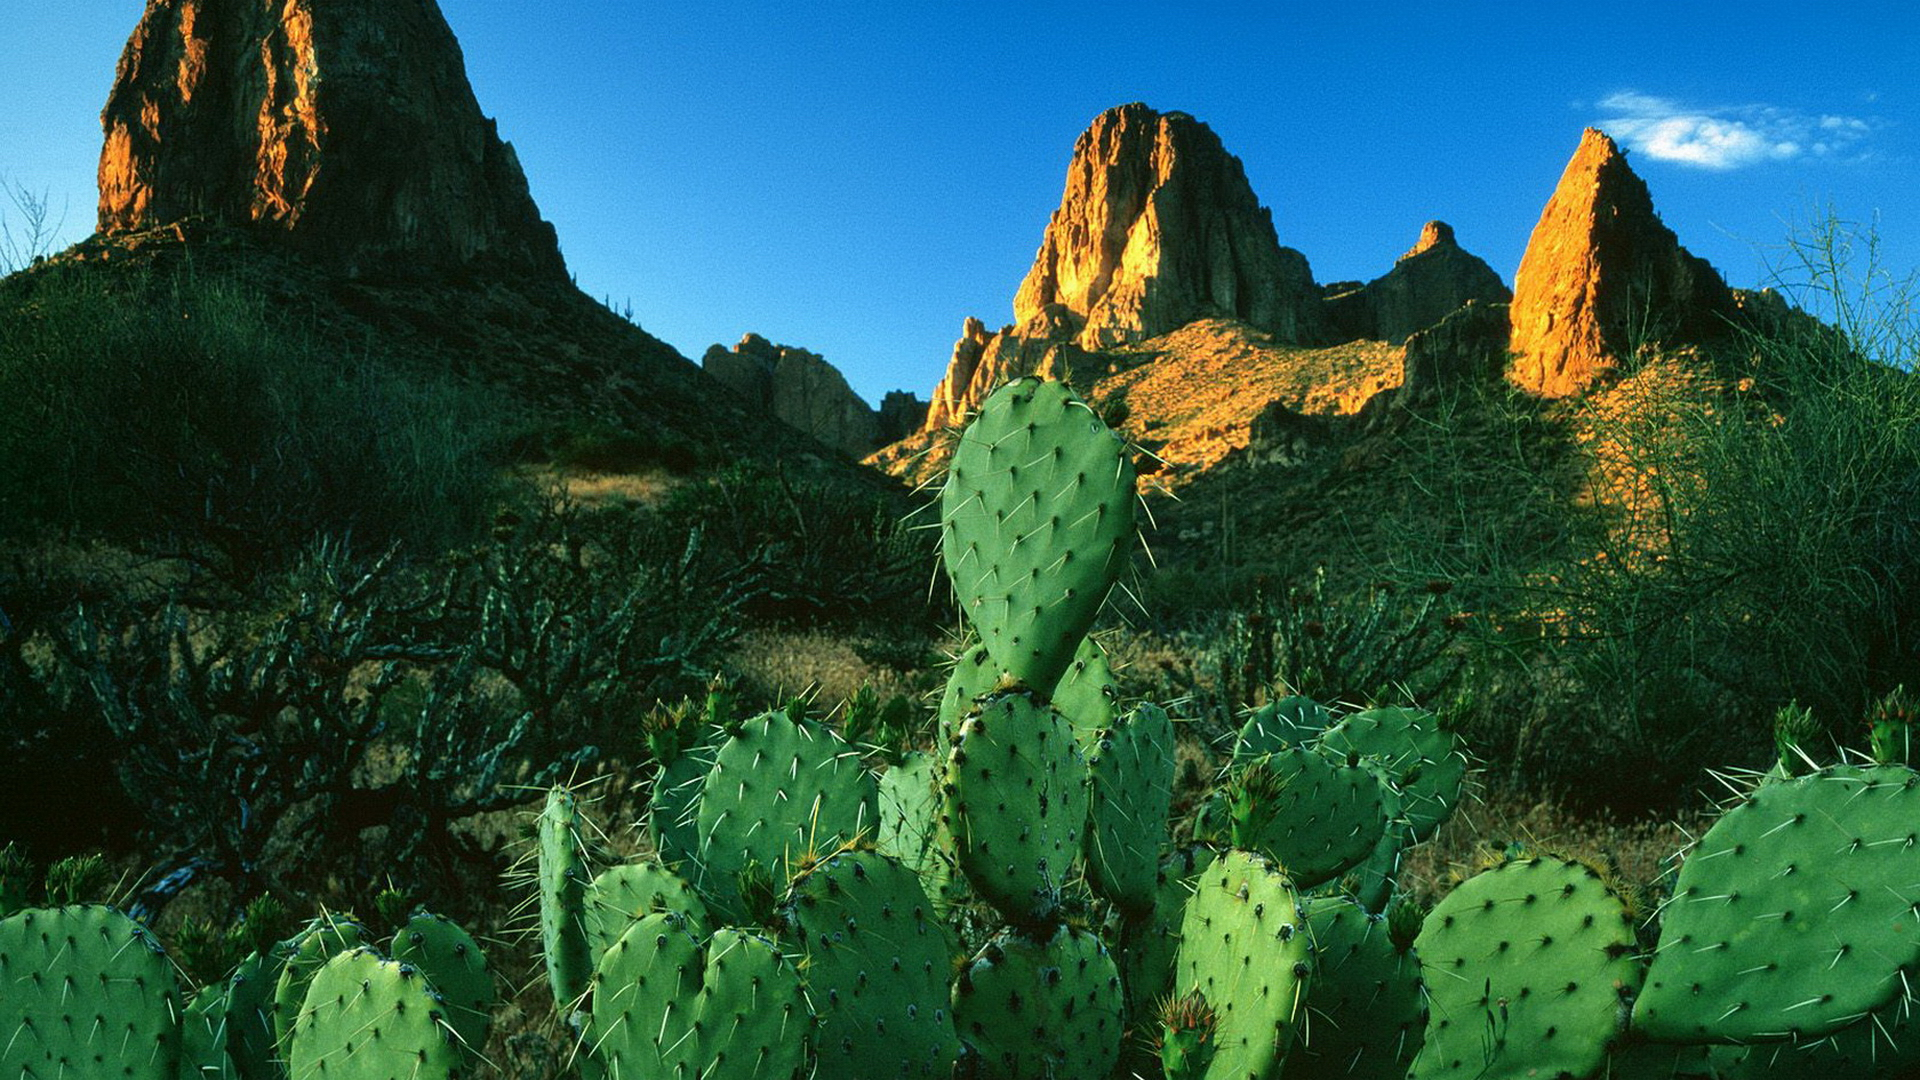 hd cactus wallpapers - photo #33